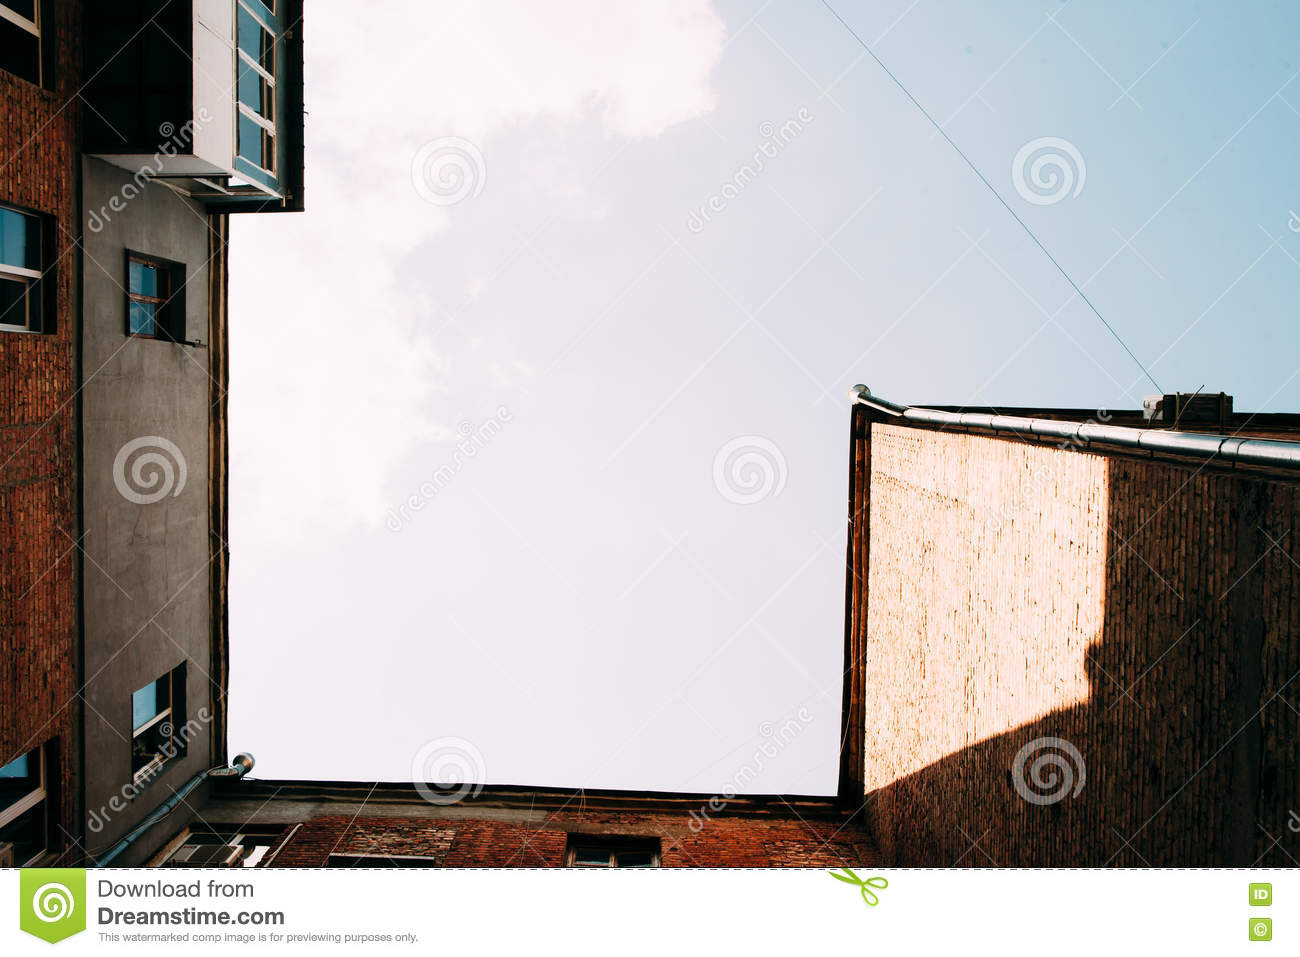 View From Below On Old Brick House With Blue Sky Stock Photo - Image ...